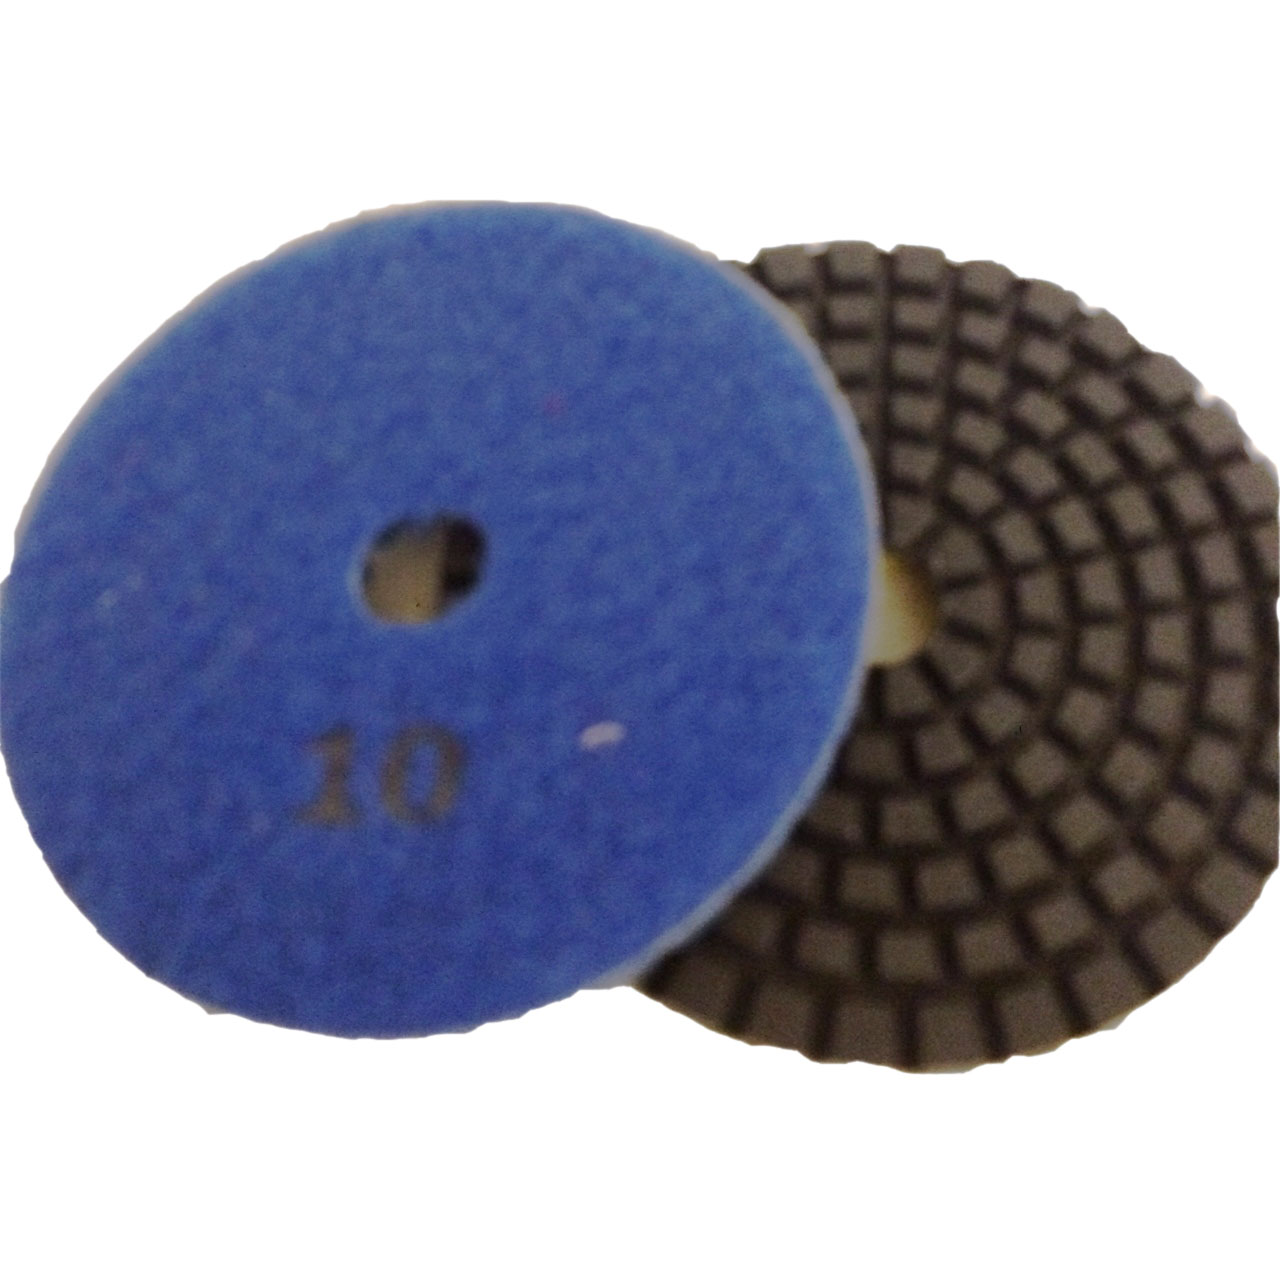 3 Inch  10 Grit Diamond Disc to fit a Flex Angle Grinder